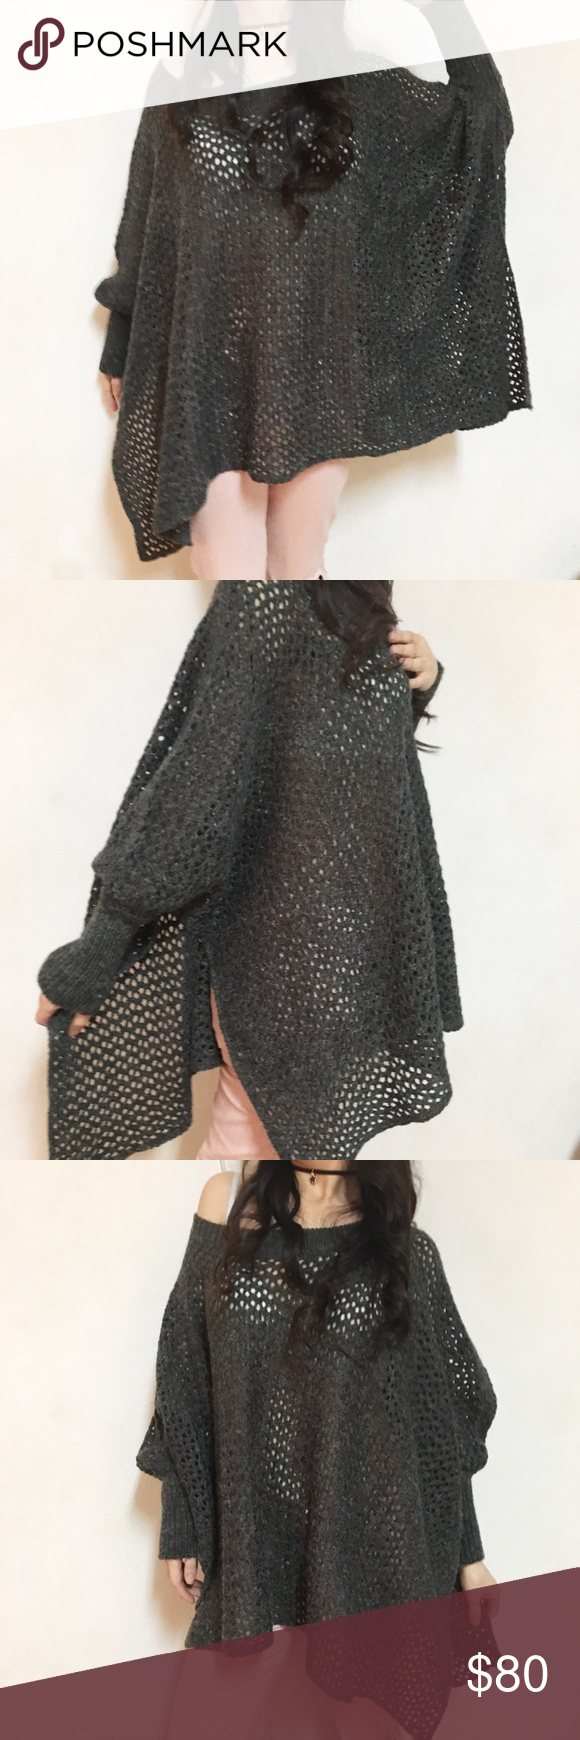 LF Oversized off shoulder holey knit sweater NWT